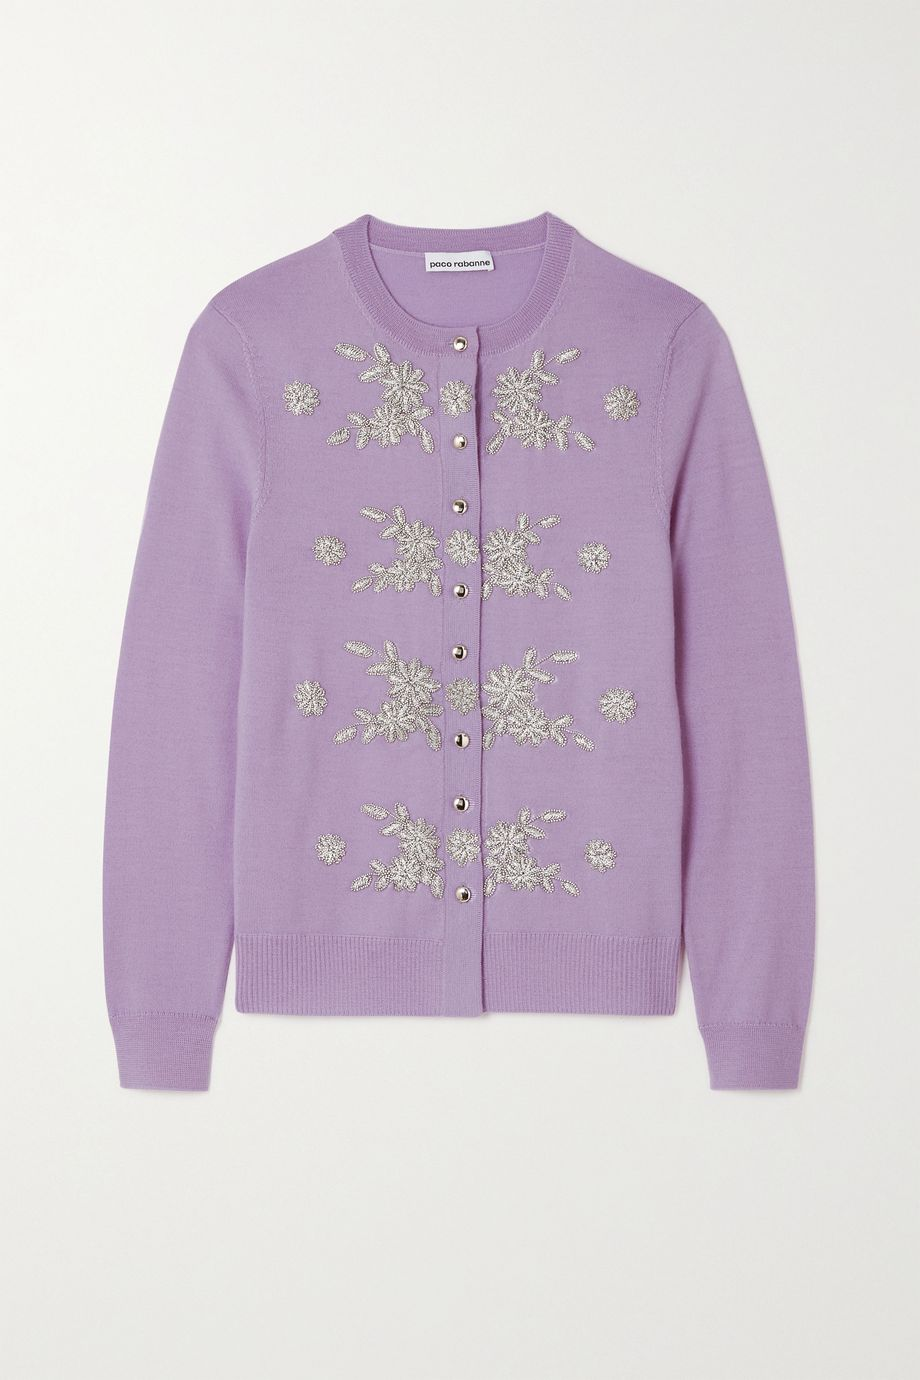 Paco Rabanne Embellished embroidered merino wool cardigan